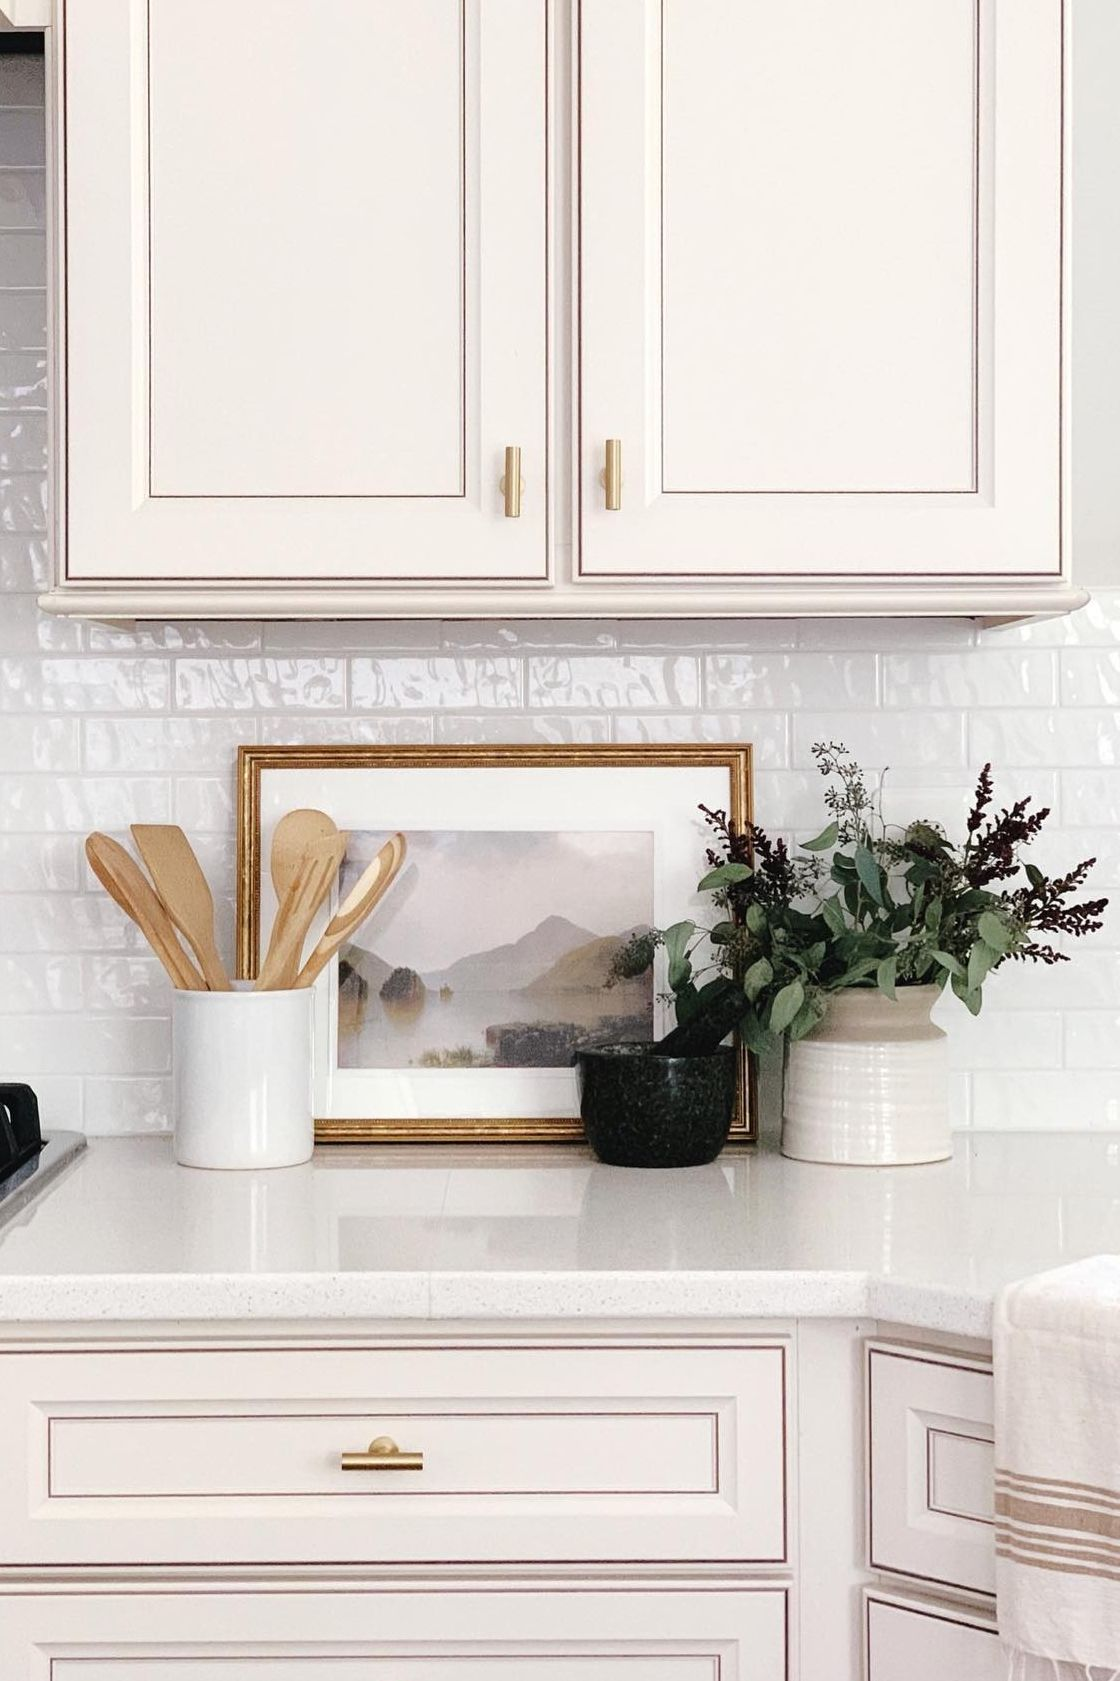 Upgrade Your Kitchen Countertop With Farmhouse Decor And Fake